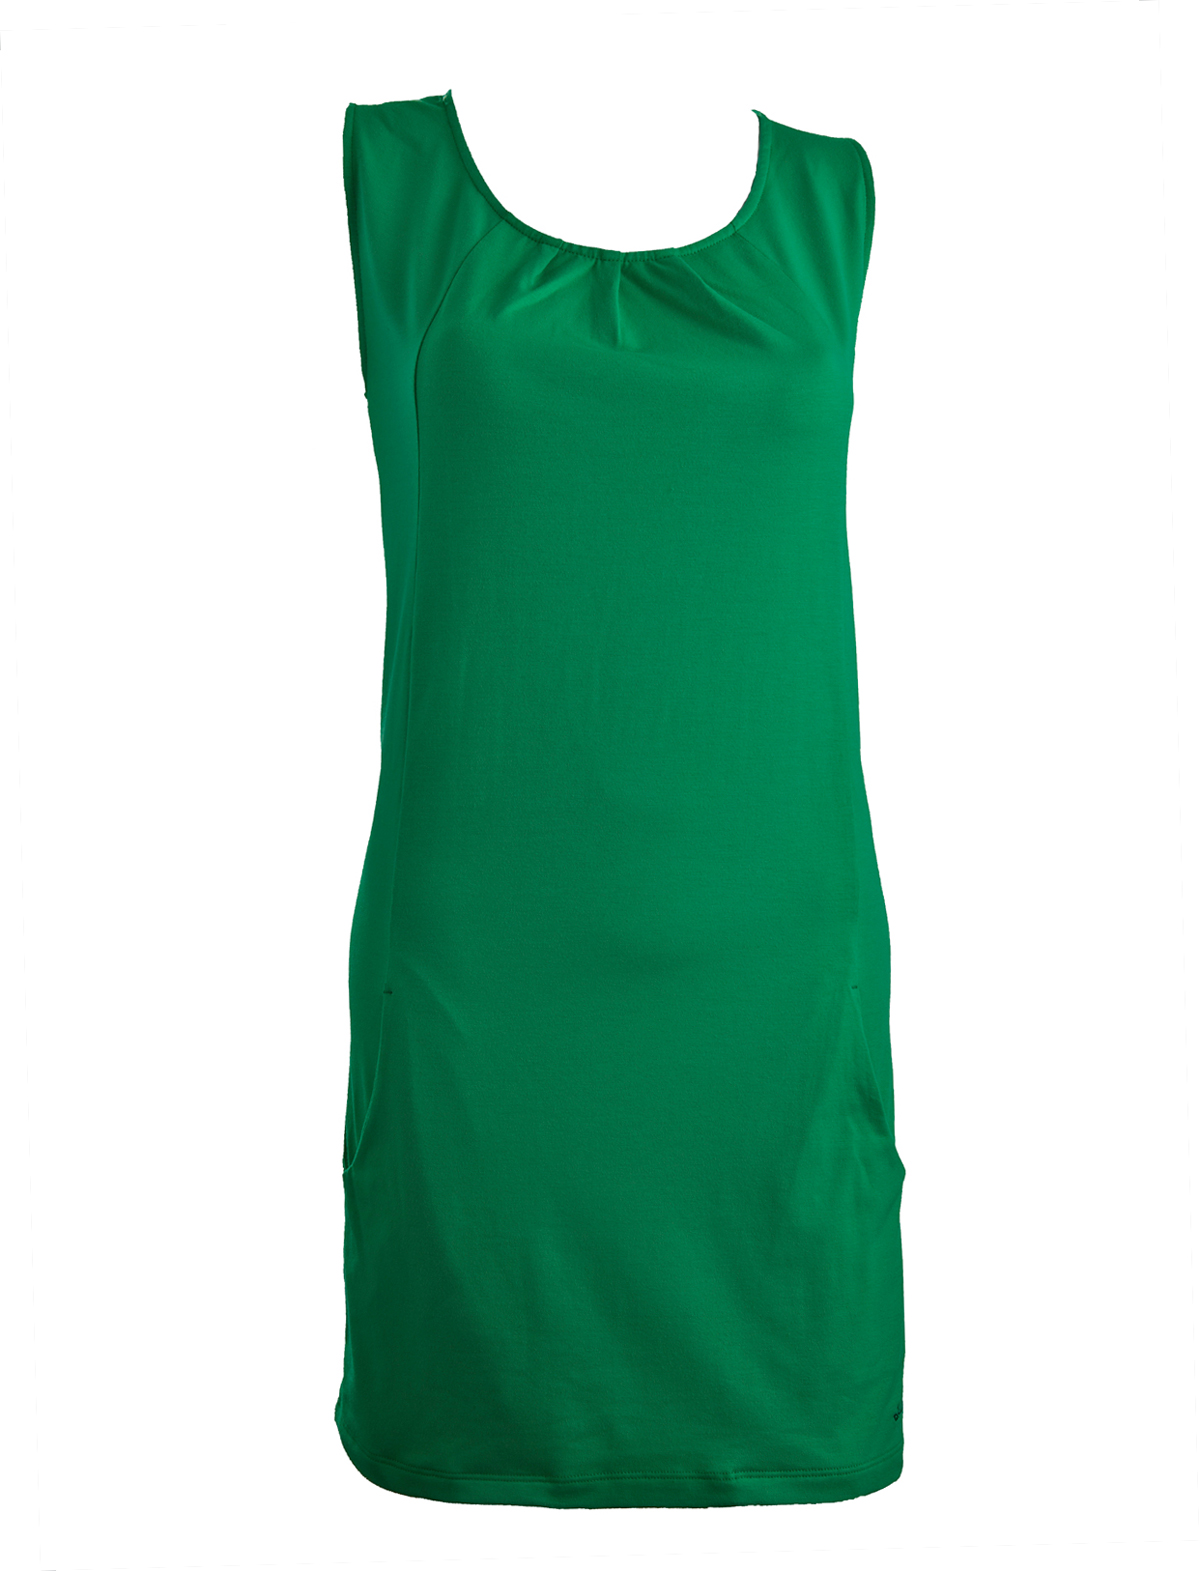 Loeka_Green_Dress_01